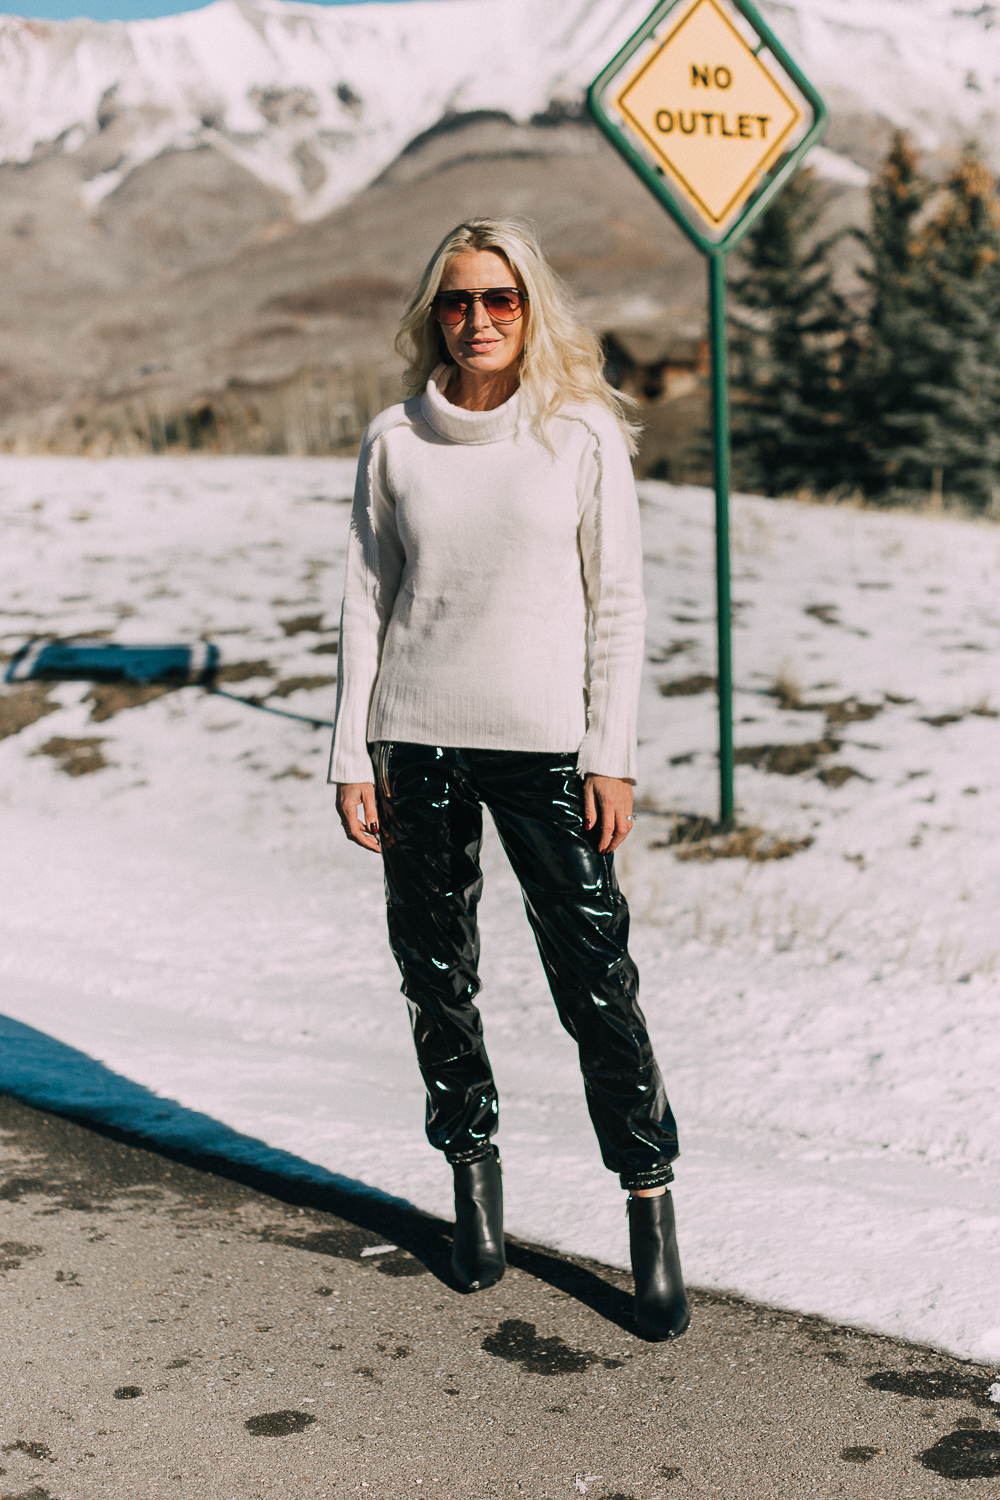 Fashion blogger over 40 Erin Busbee of BusbeeStyle.com wearing black vinyl jogger pants by RtA with black Michael Kors booties and a white cashmere turtleneck sweater by Brochu Walker, in Telluride, Colorado